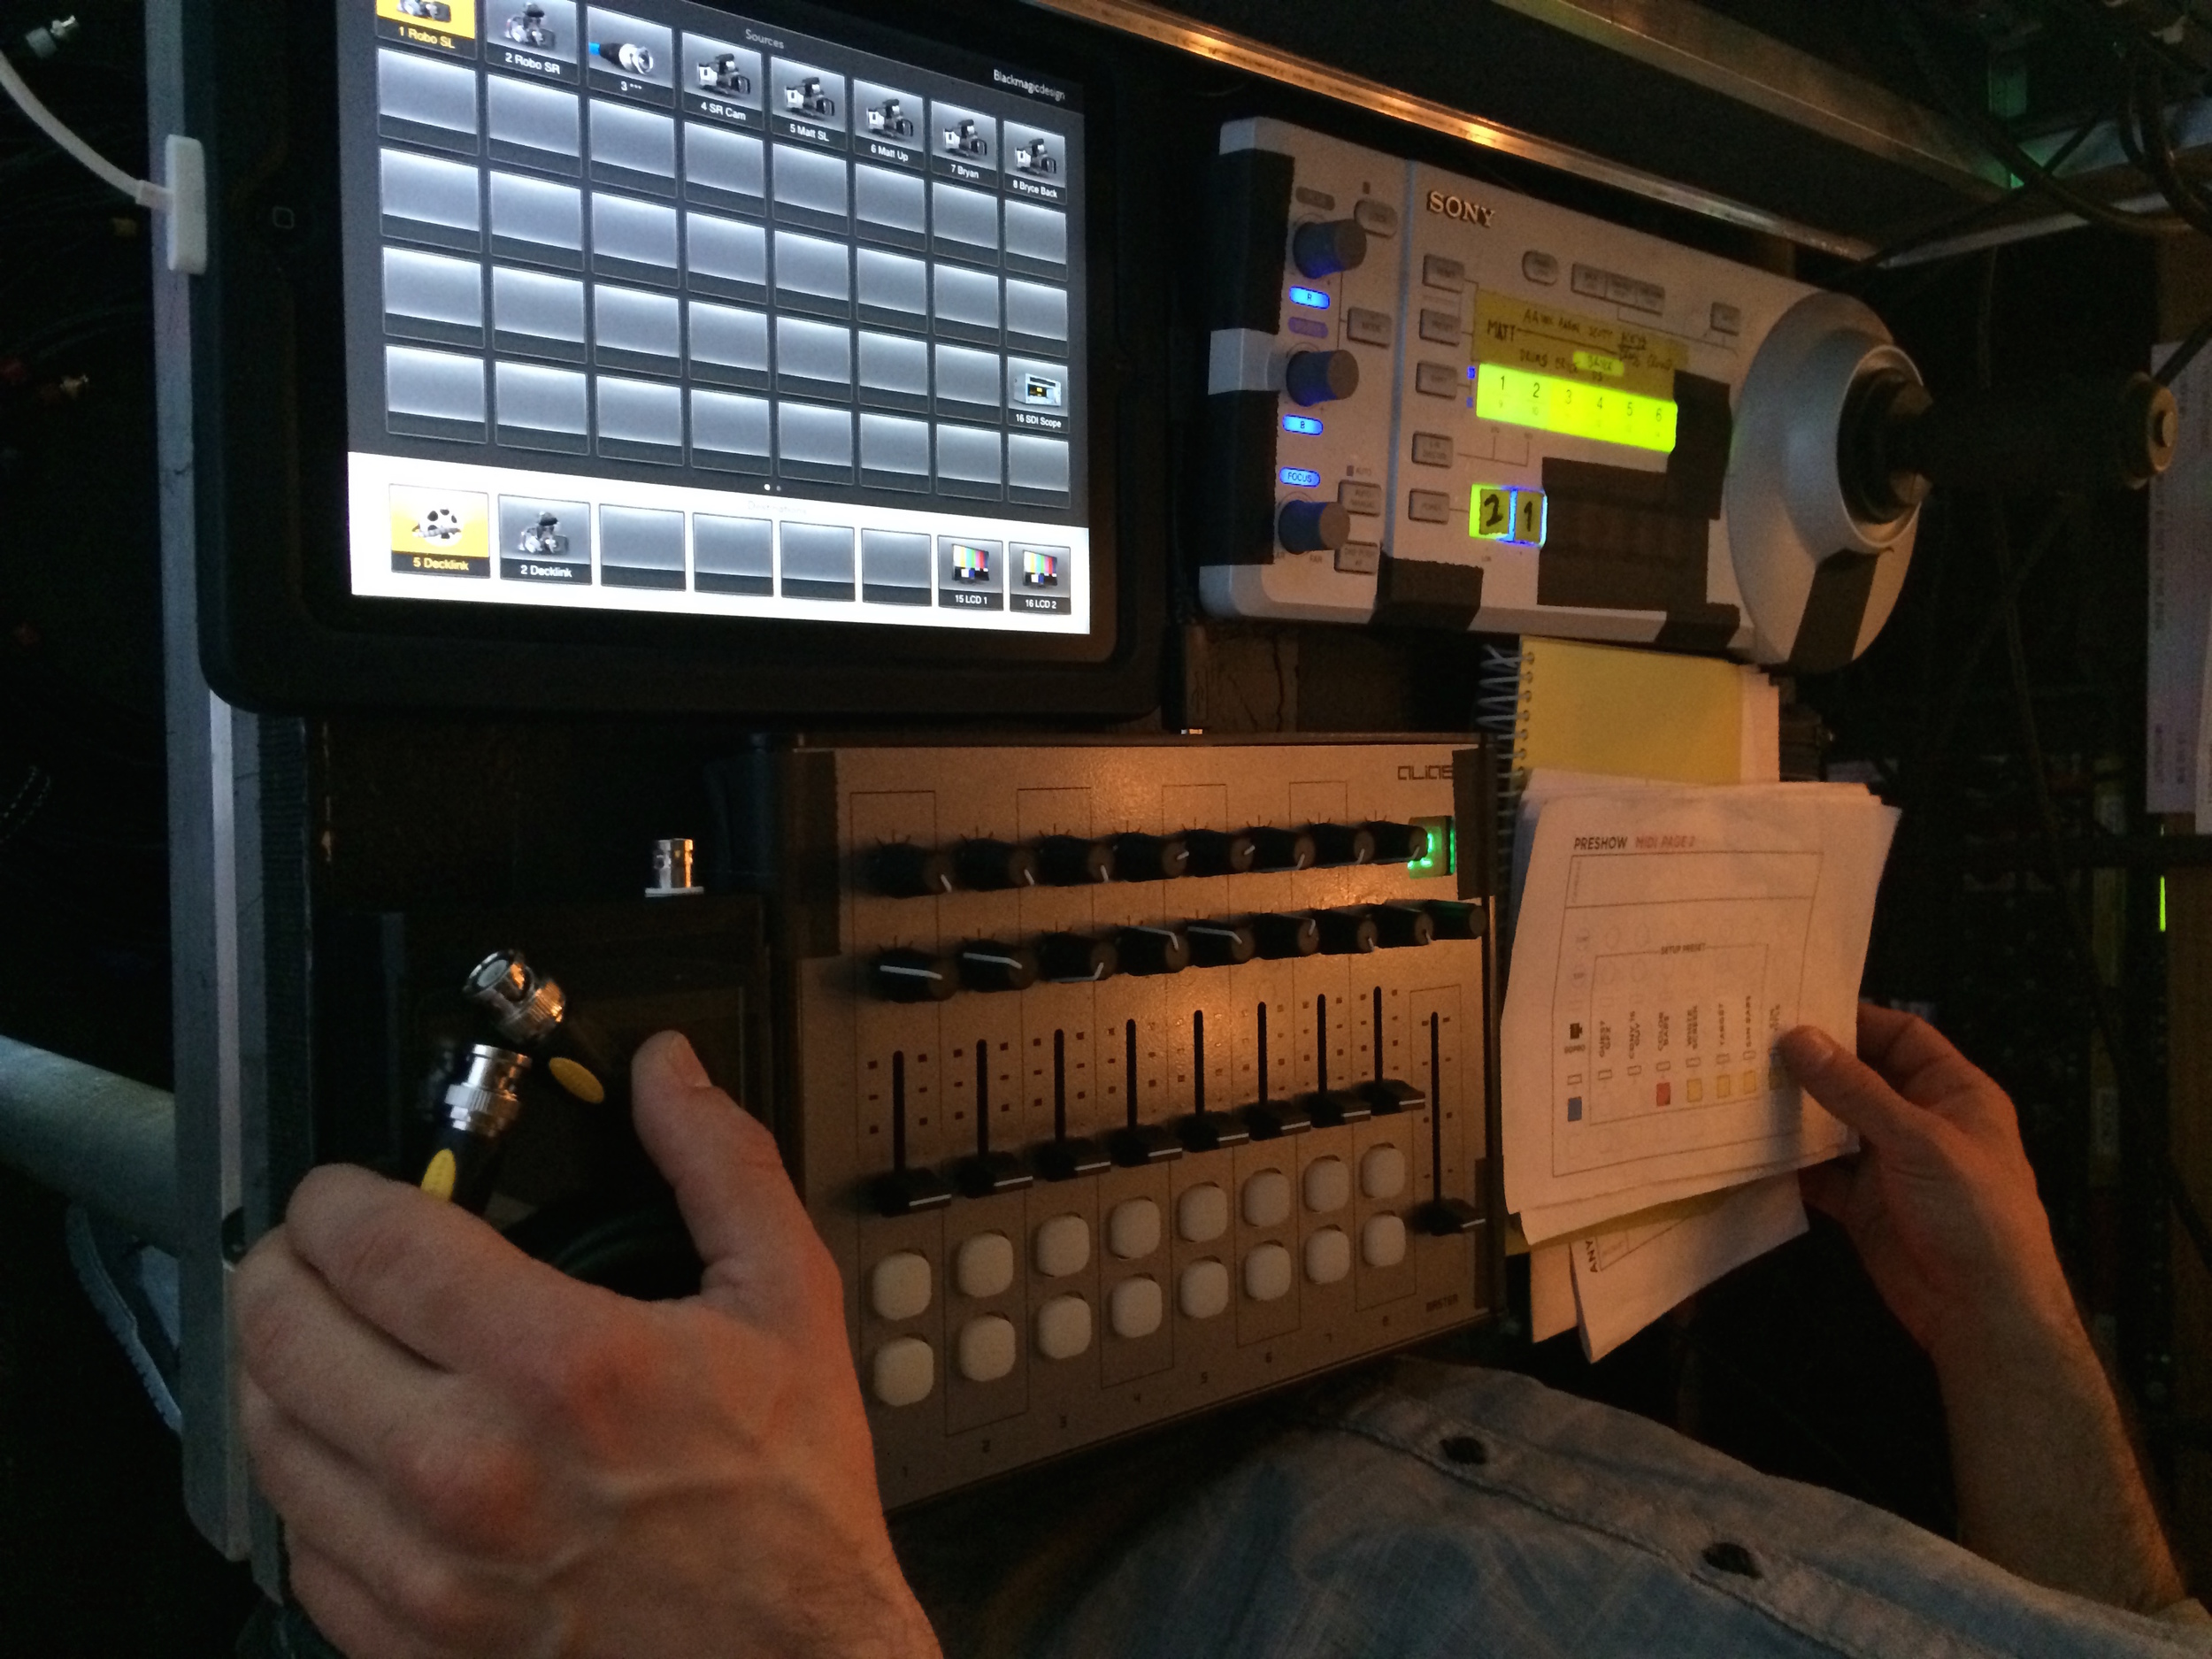 Controls for live camera switching and visuals.